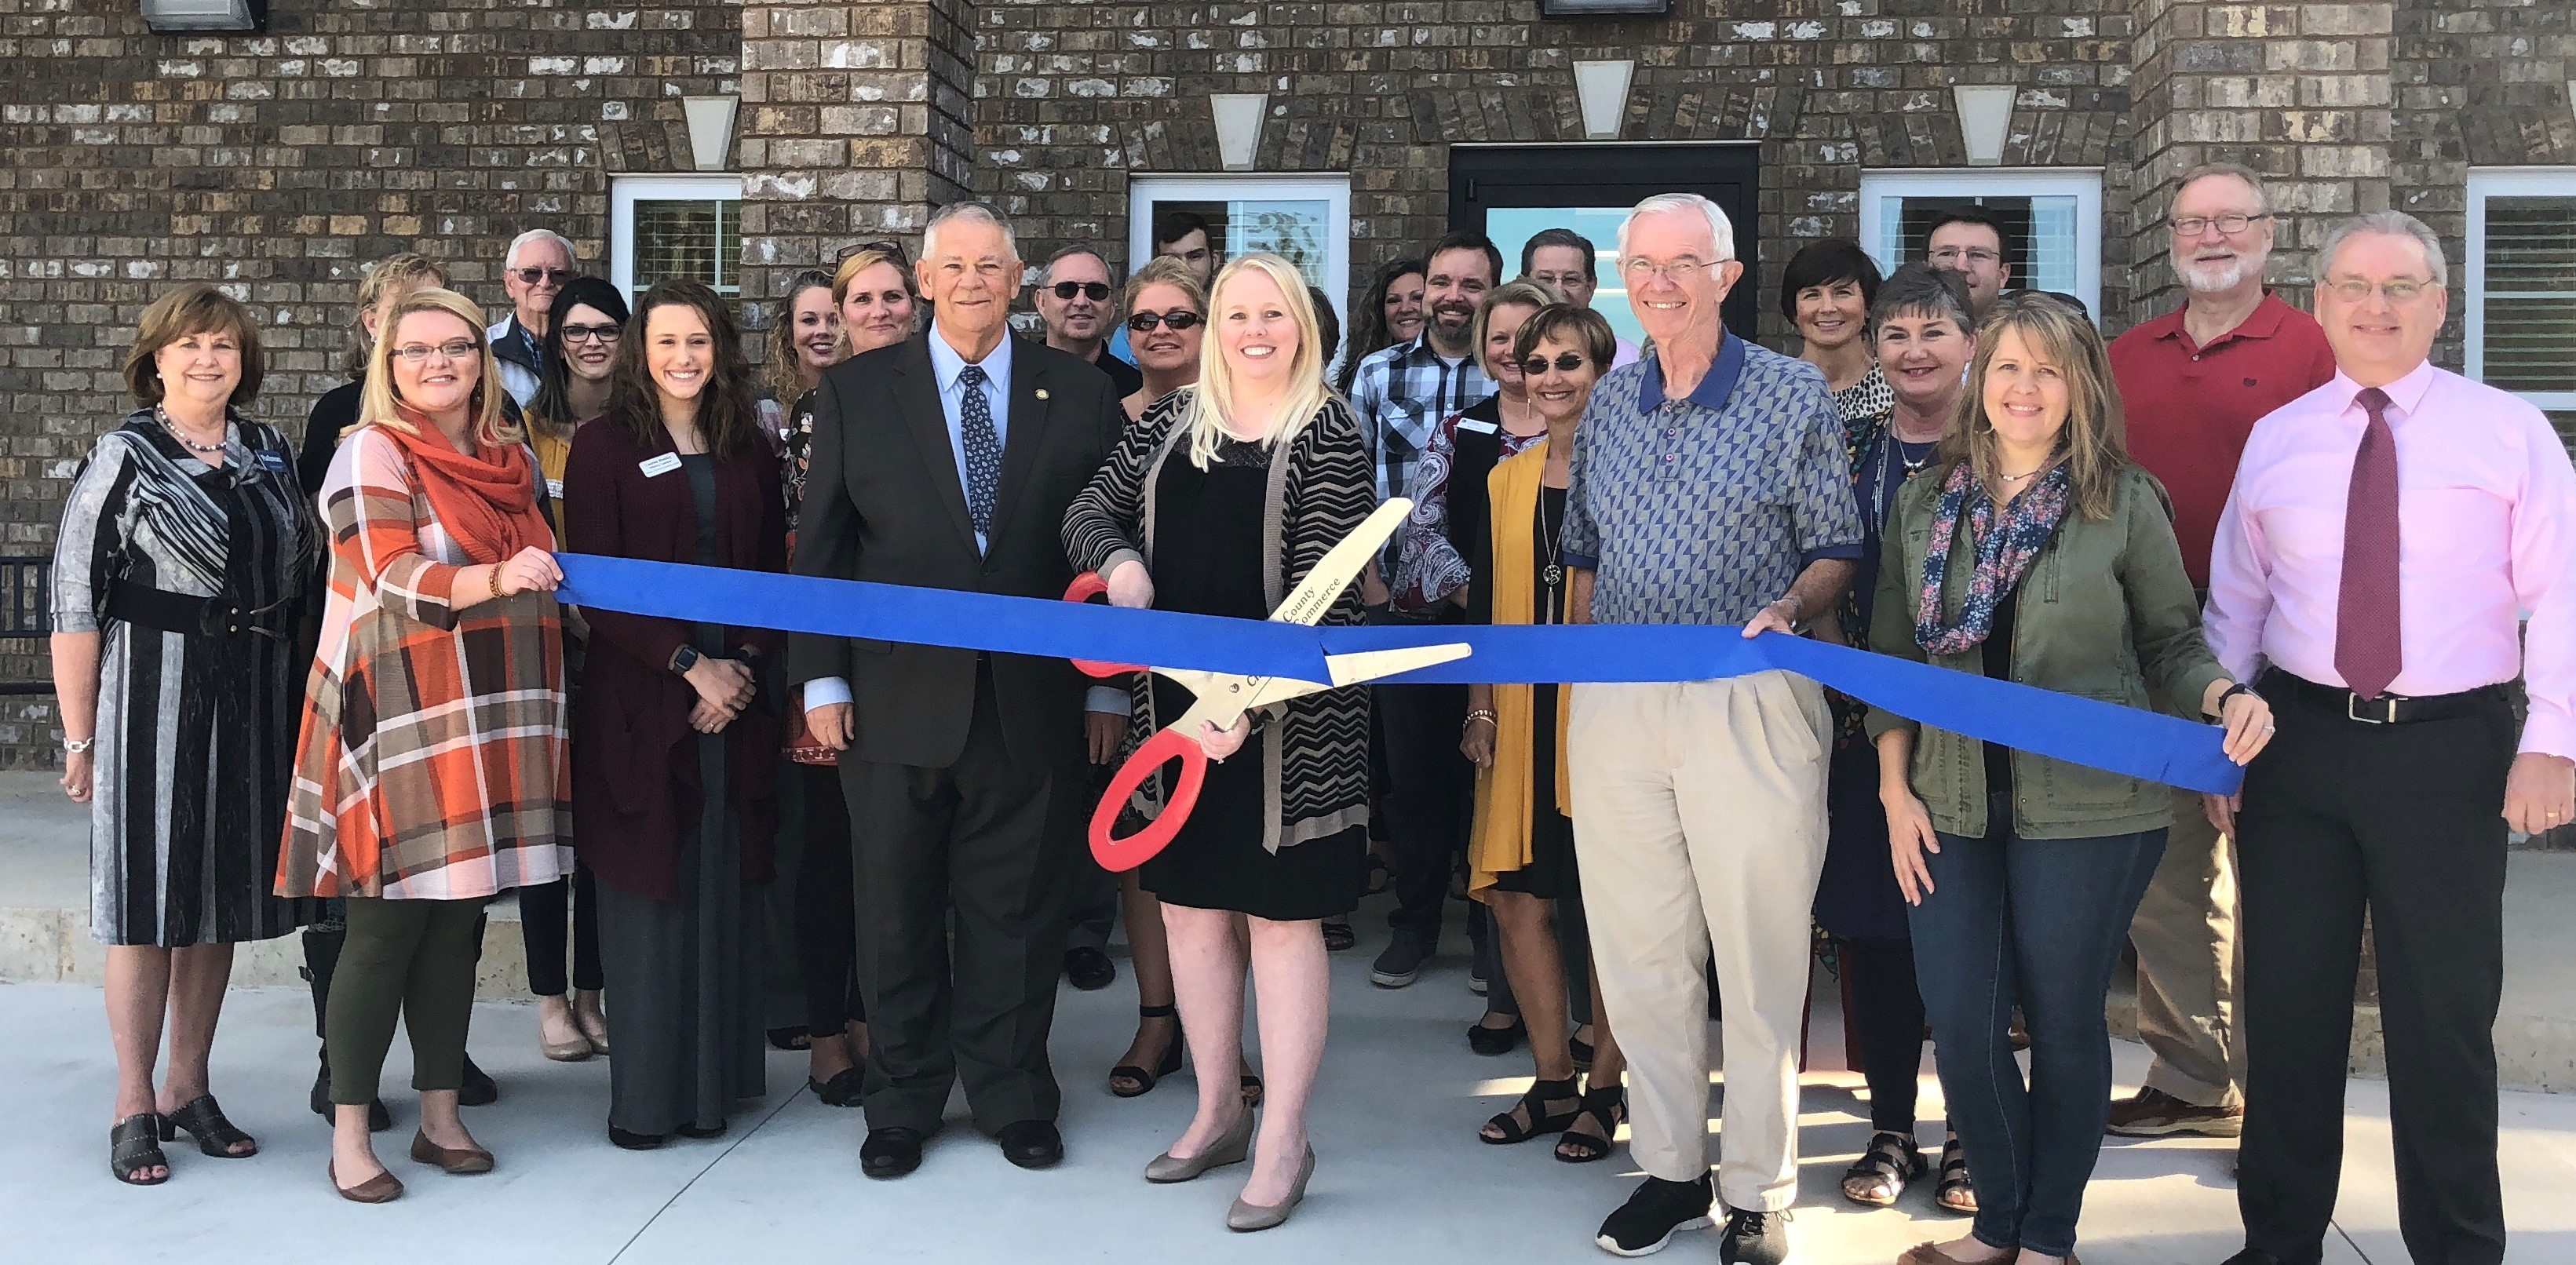 Ribbon Cutting for Christian Learning Center